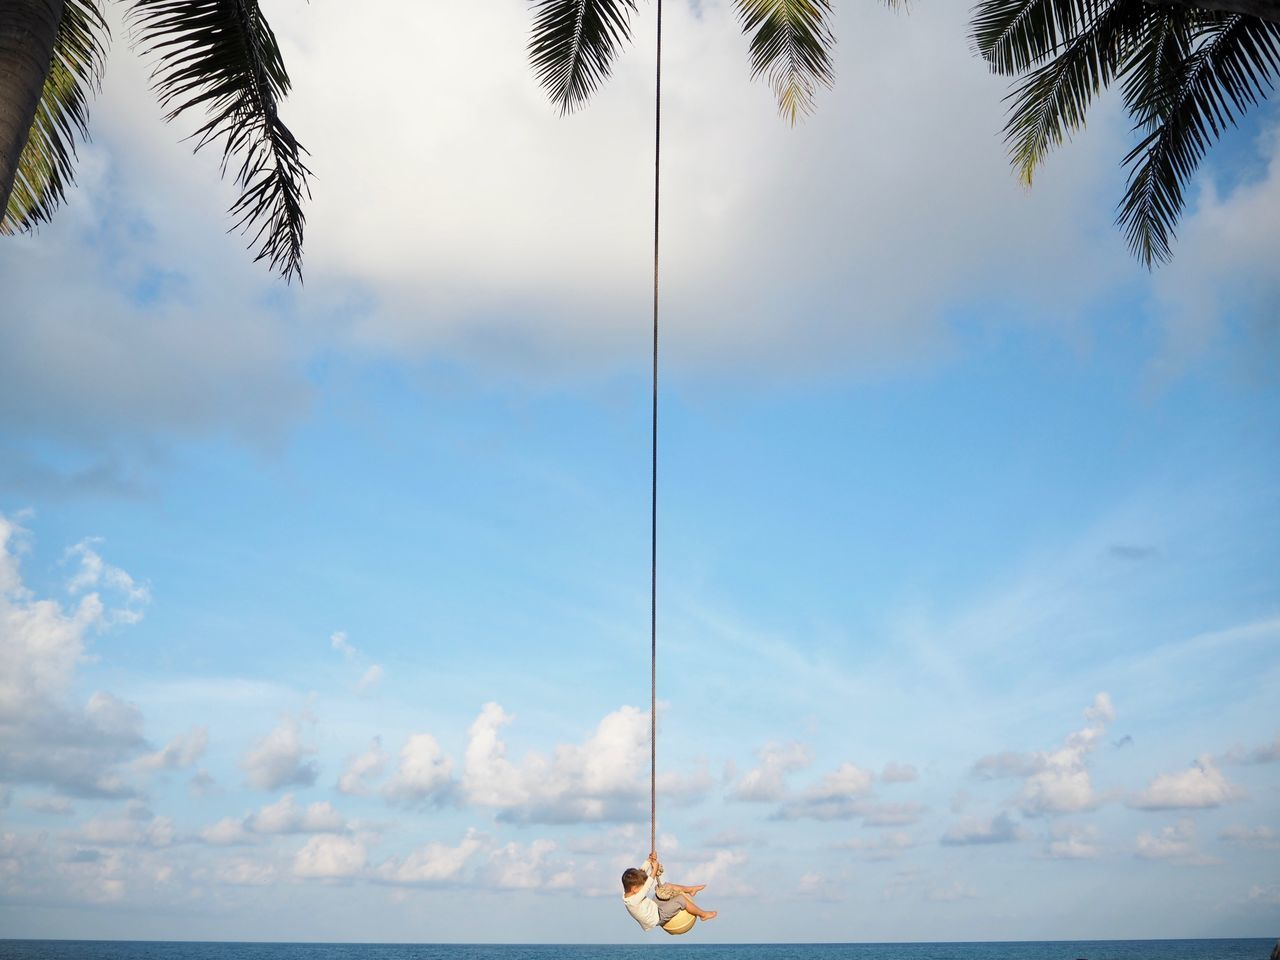 boy day Freedom horizon over water Nature no people outdoors Palm tree scenics sea sky Sunlight swing Tree water